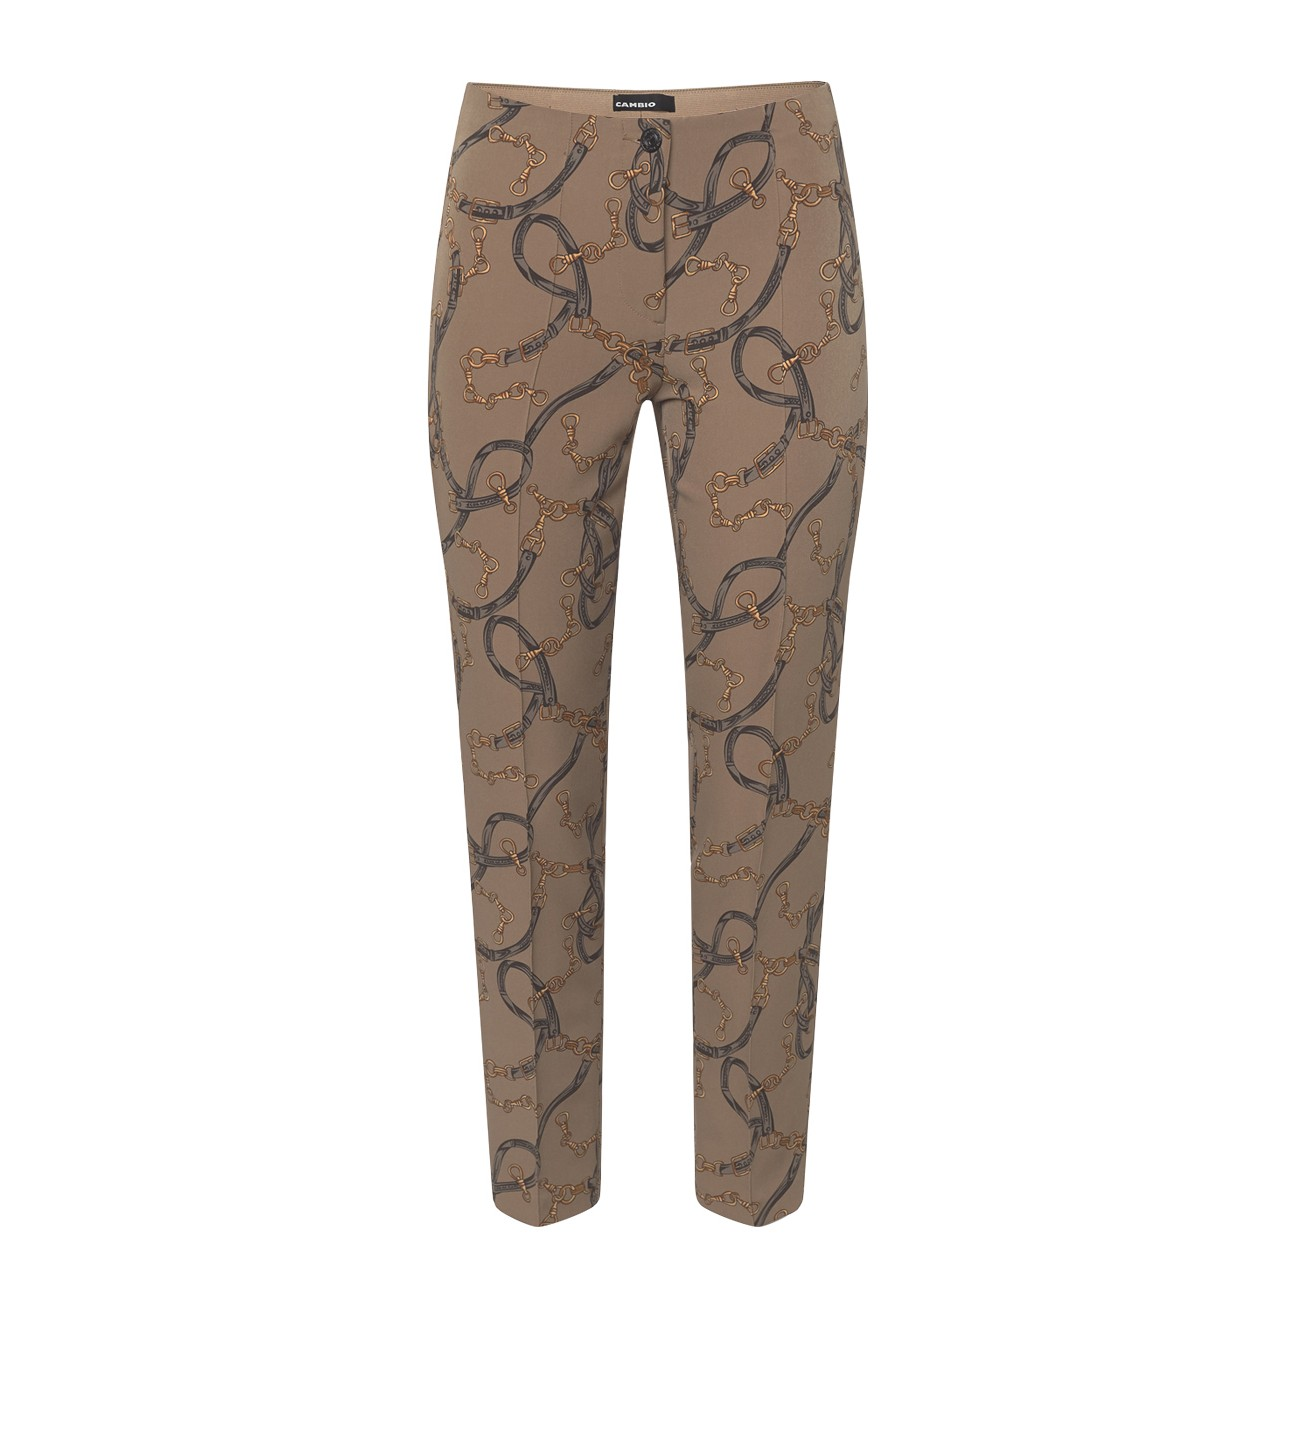 CAMBIO_CHAIN_PRINT_TROUSERS_MARIONA_FASHION_CLOTHING_WOMAN_SHOP_ONLINE_0202/00